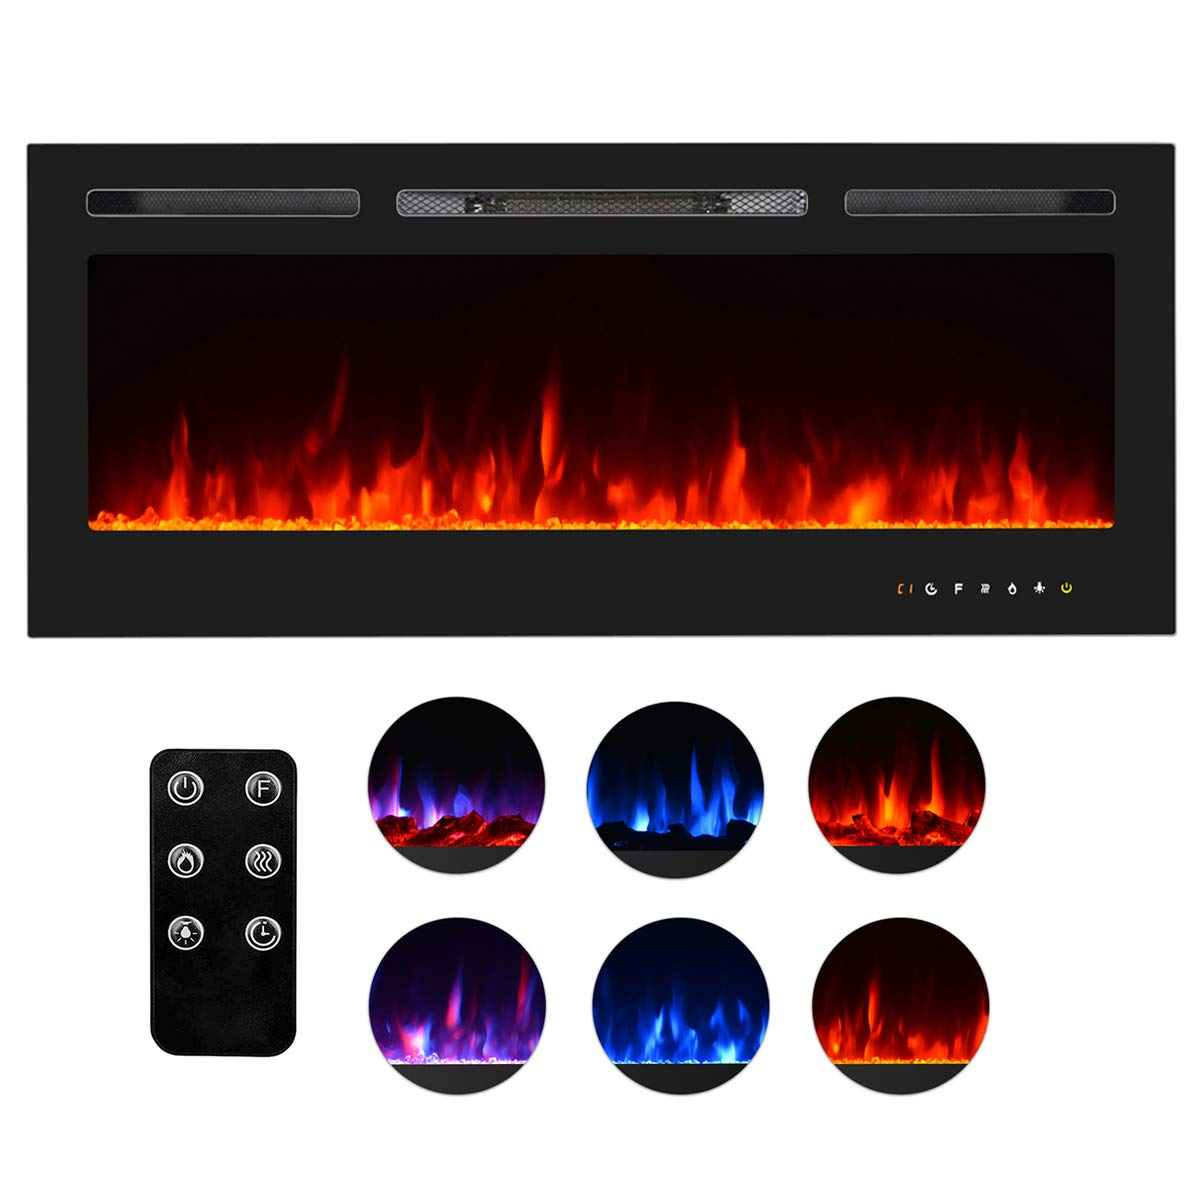 Homedex 50'' Recessed Mounted Electric Fireplace Insert with Touch Screen Control Panel, Remote Control, 750/1500W, Black by Homedex